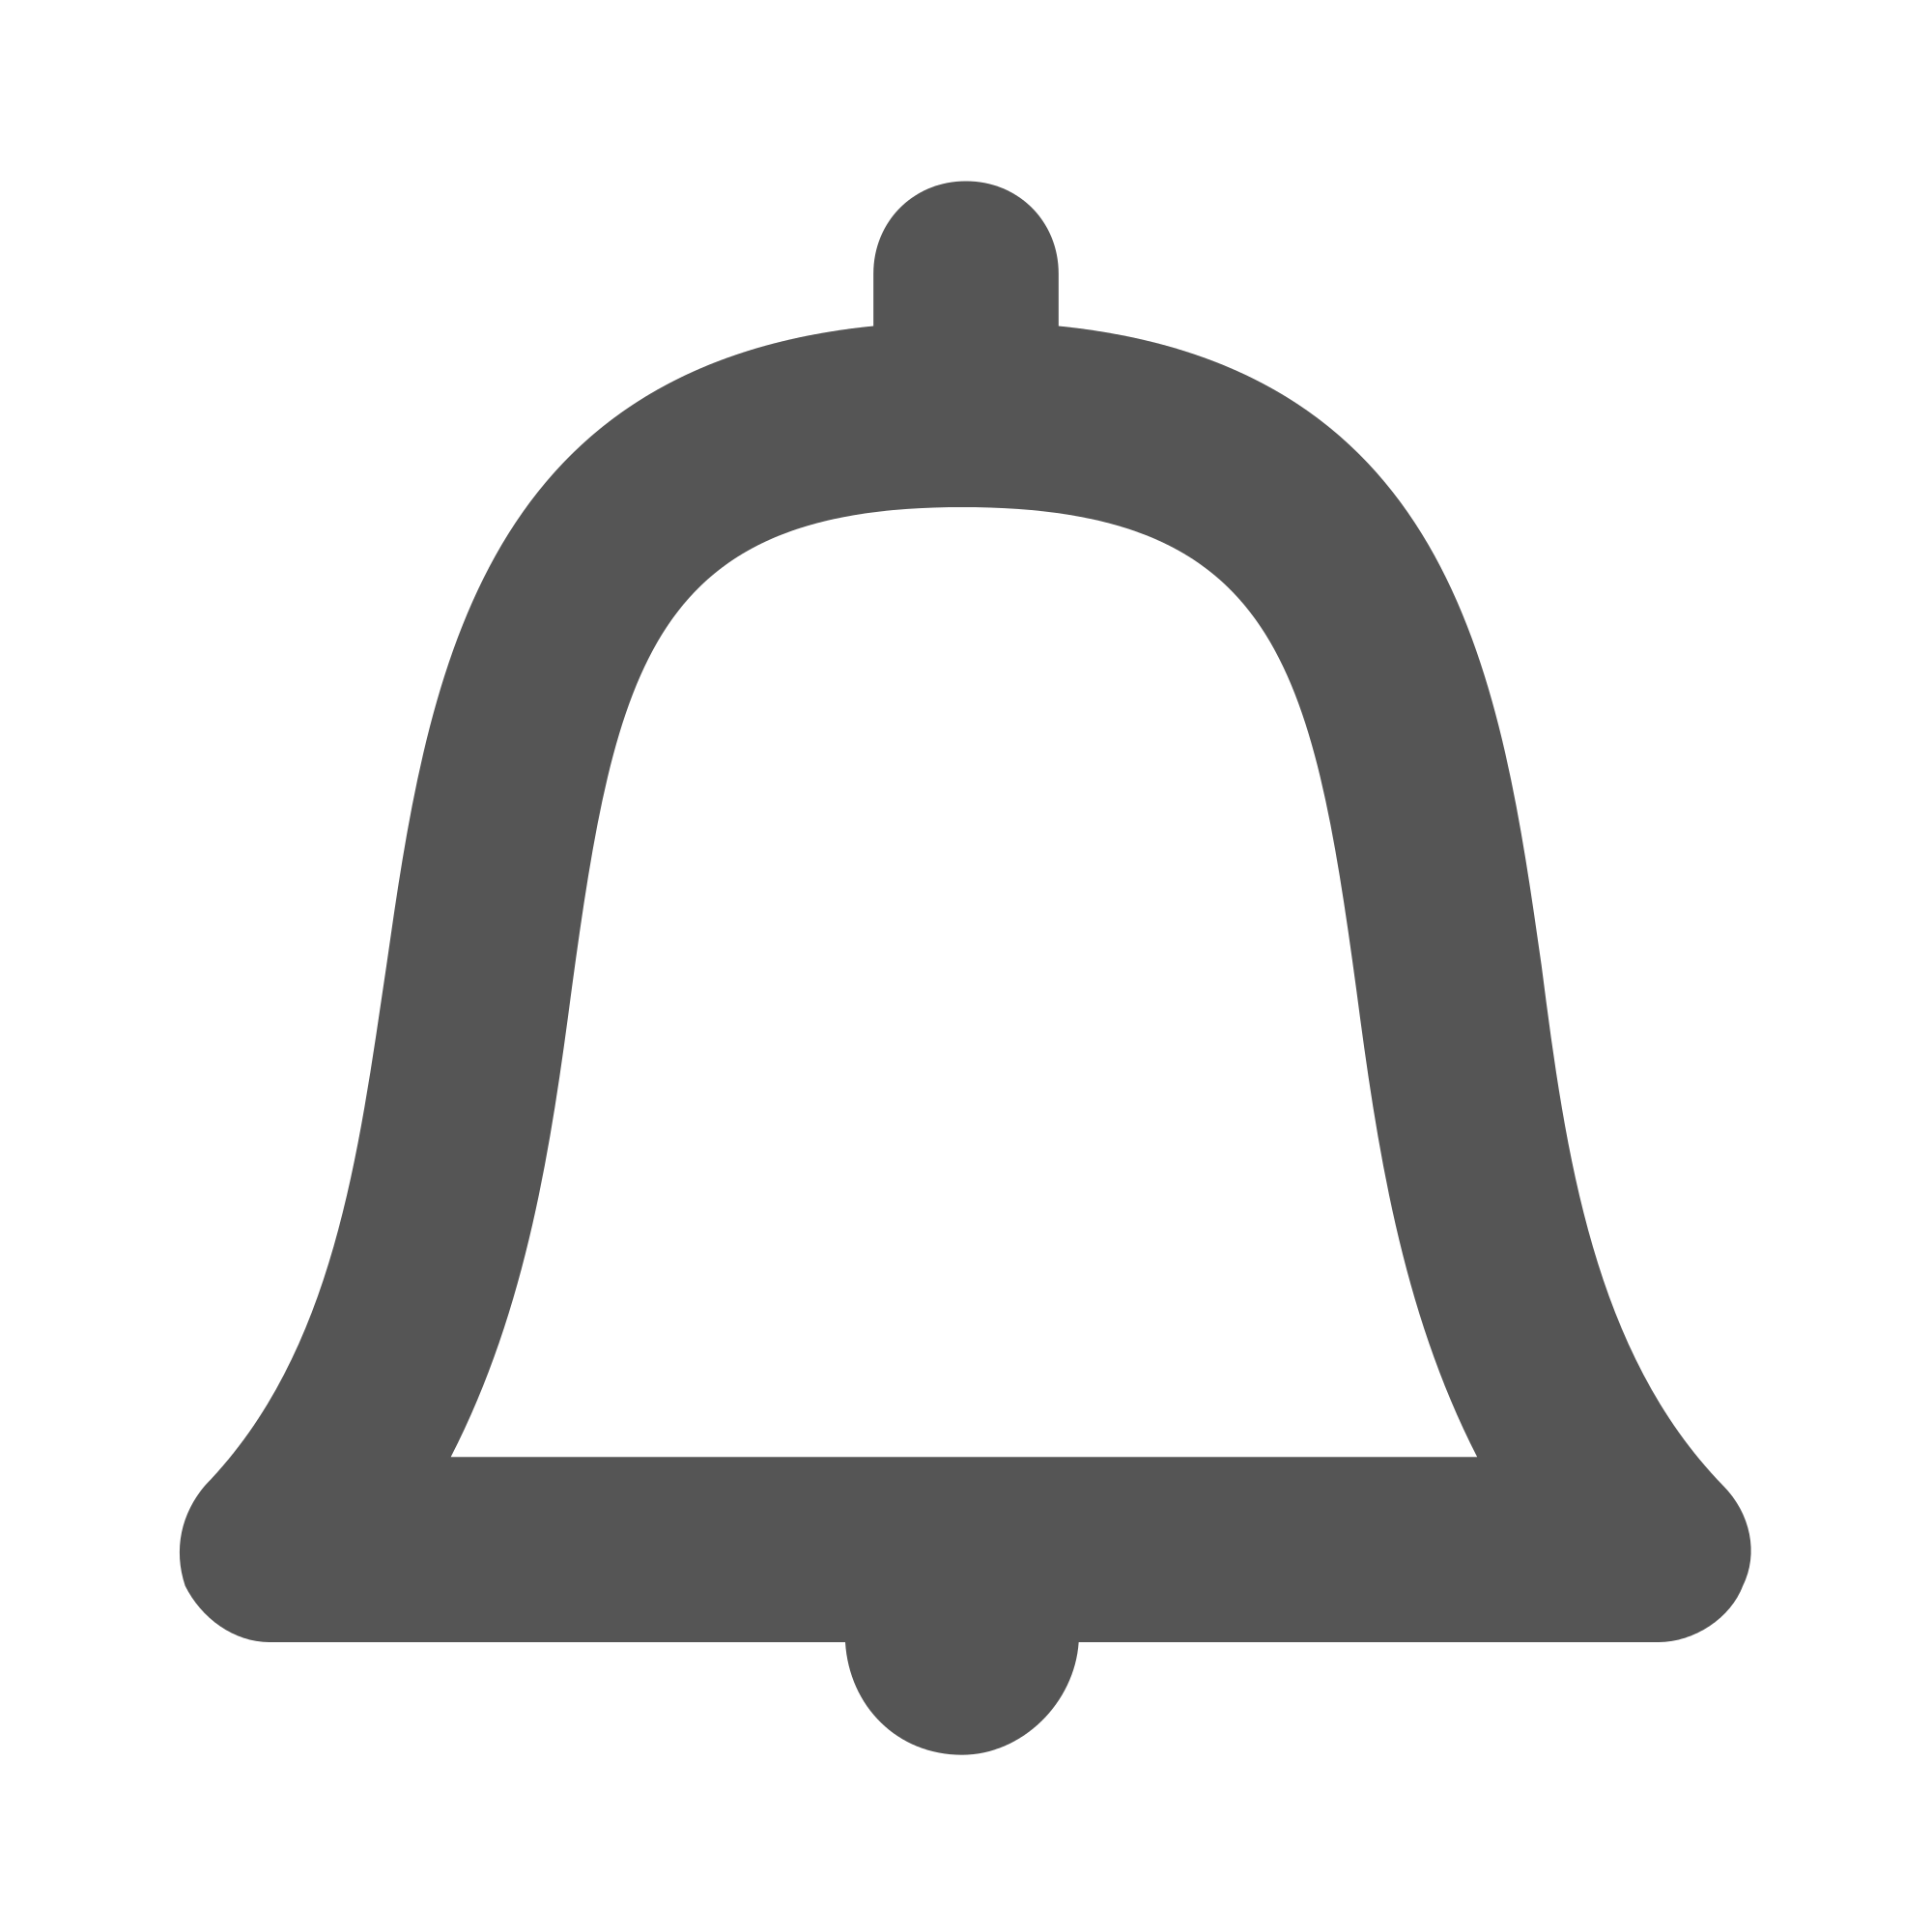 Echo wikimedia commons open. Bell svg file image black and white library